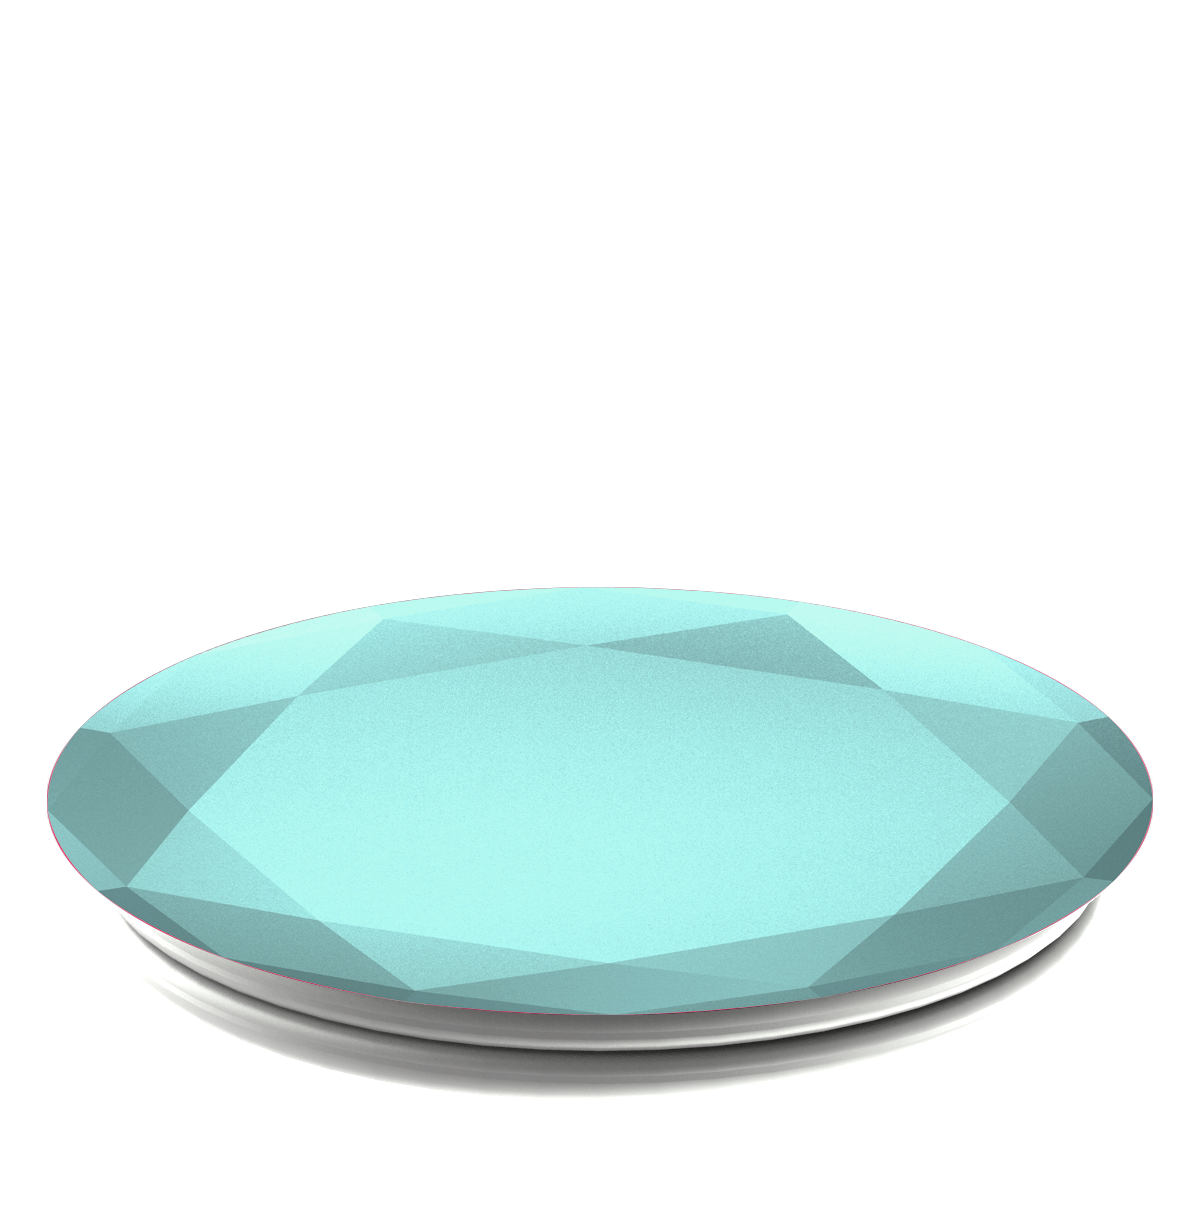 PopSockets Grip Diamond Metallic Glacier